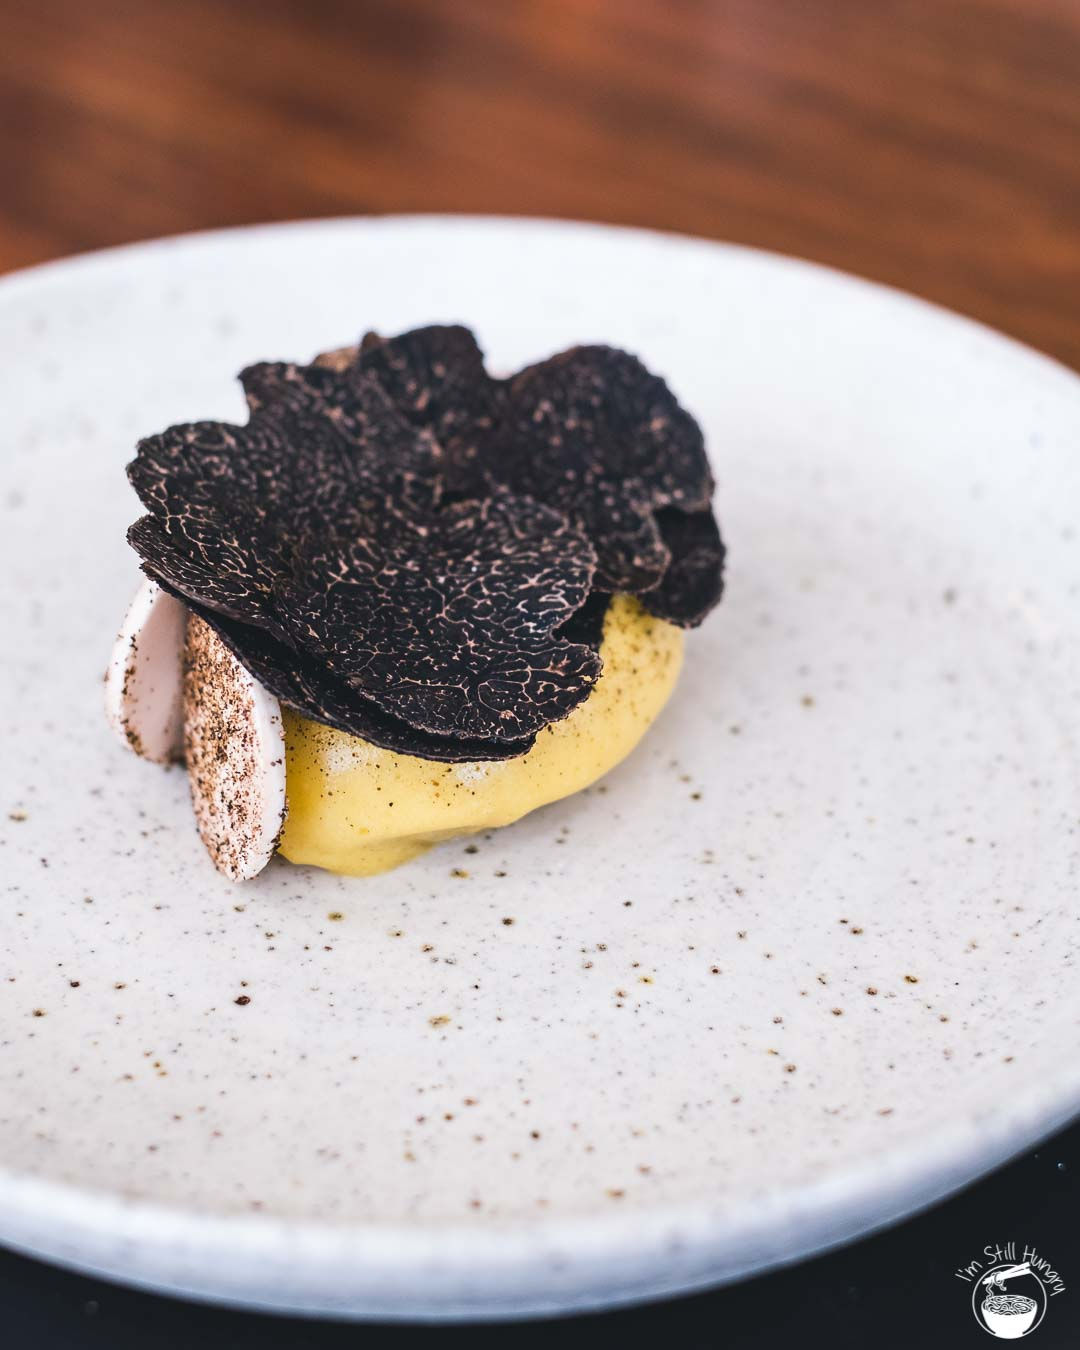 Sixpenny Stanmore Potatoes with Oyster & Raw Mushroom + Manjimup black truffle